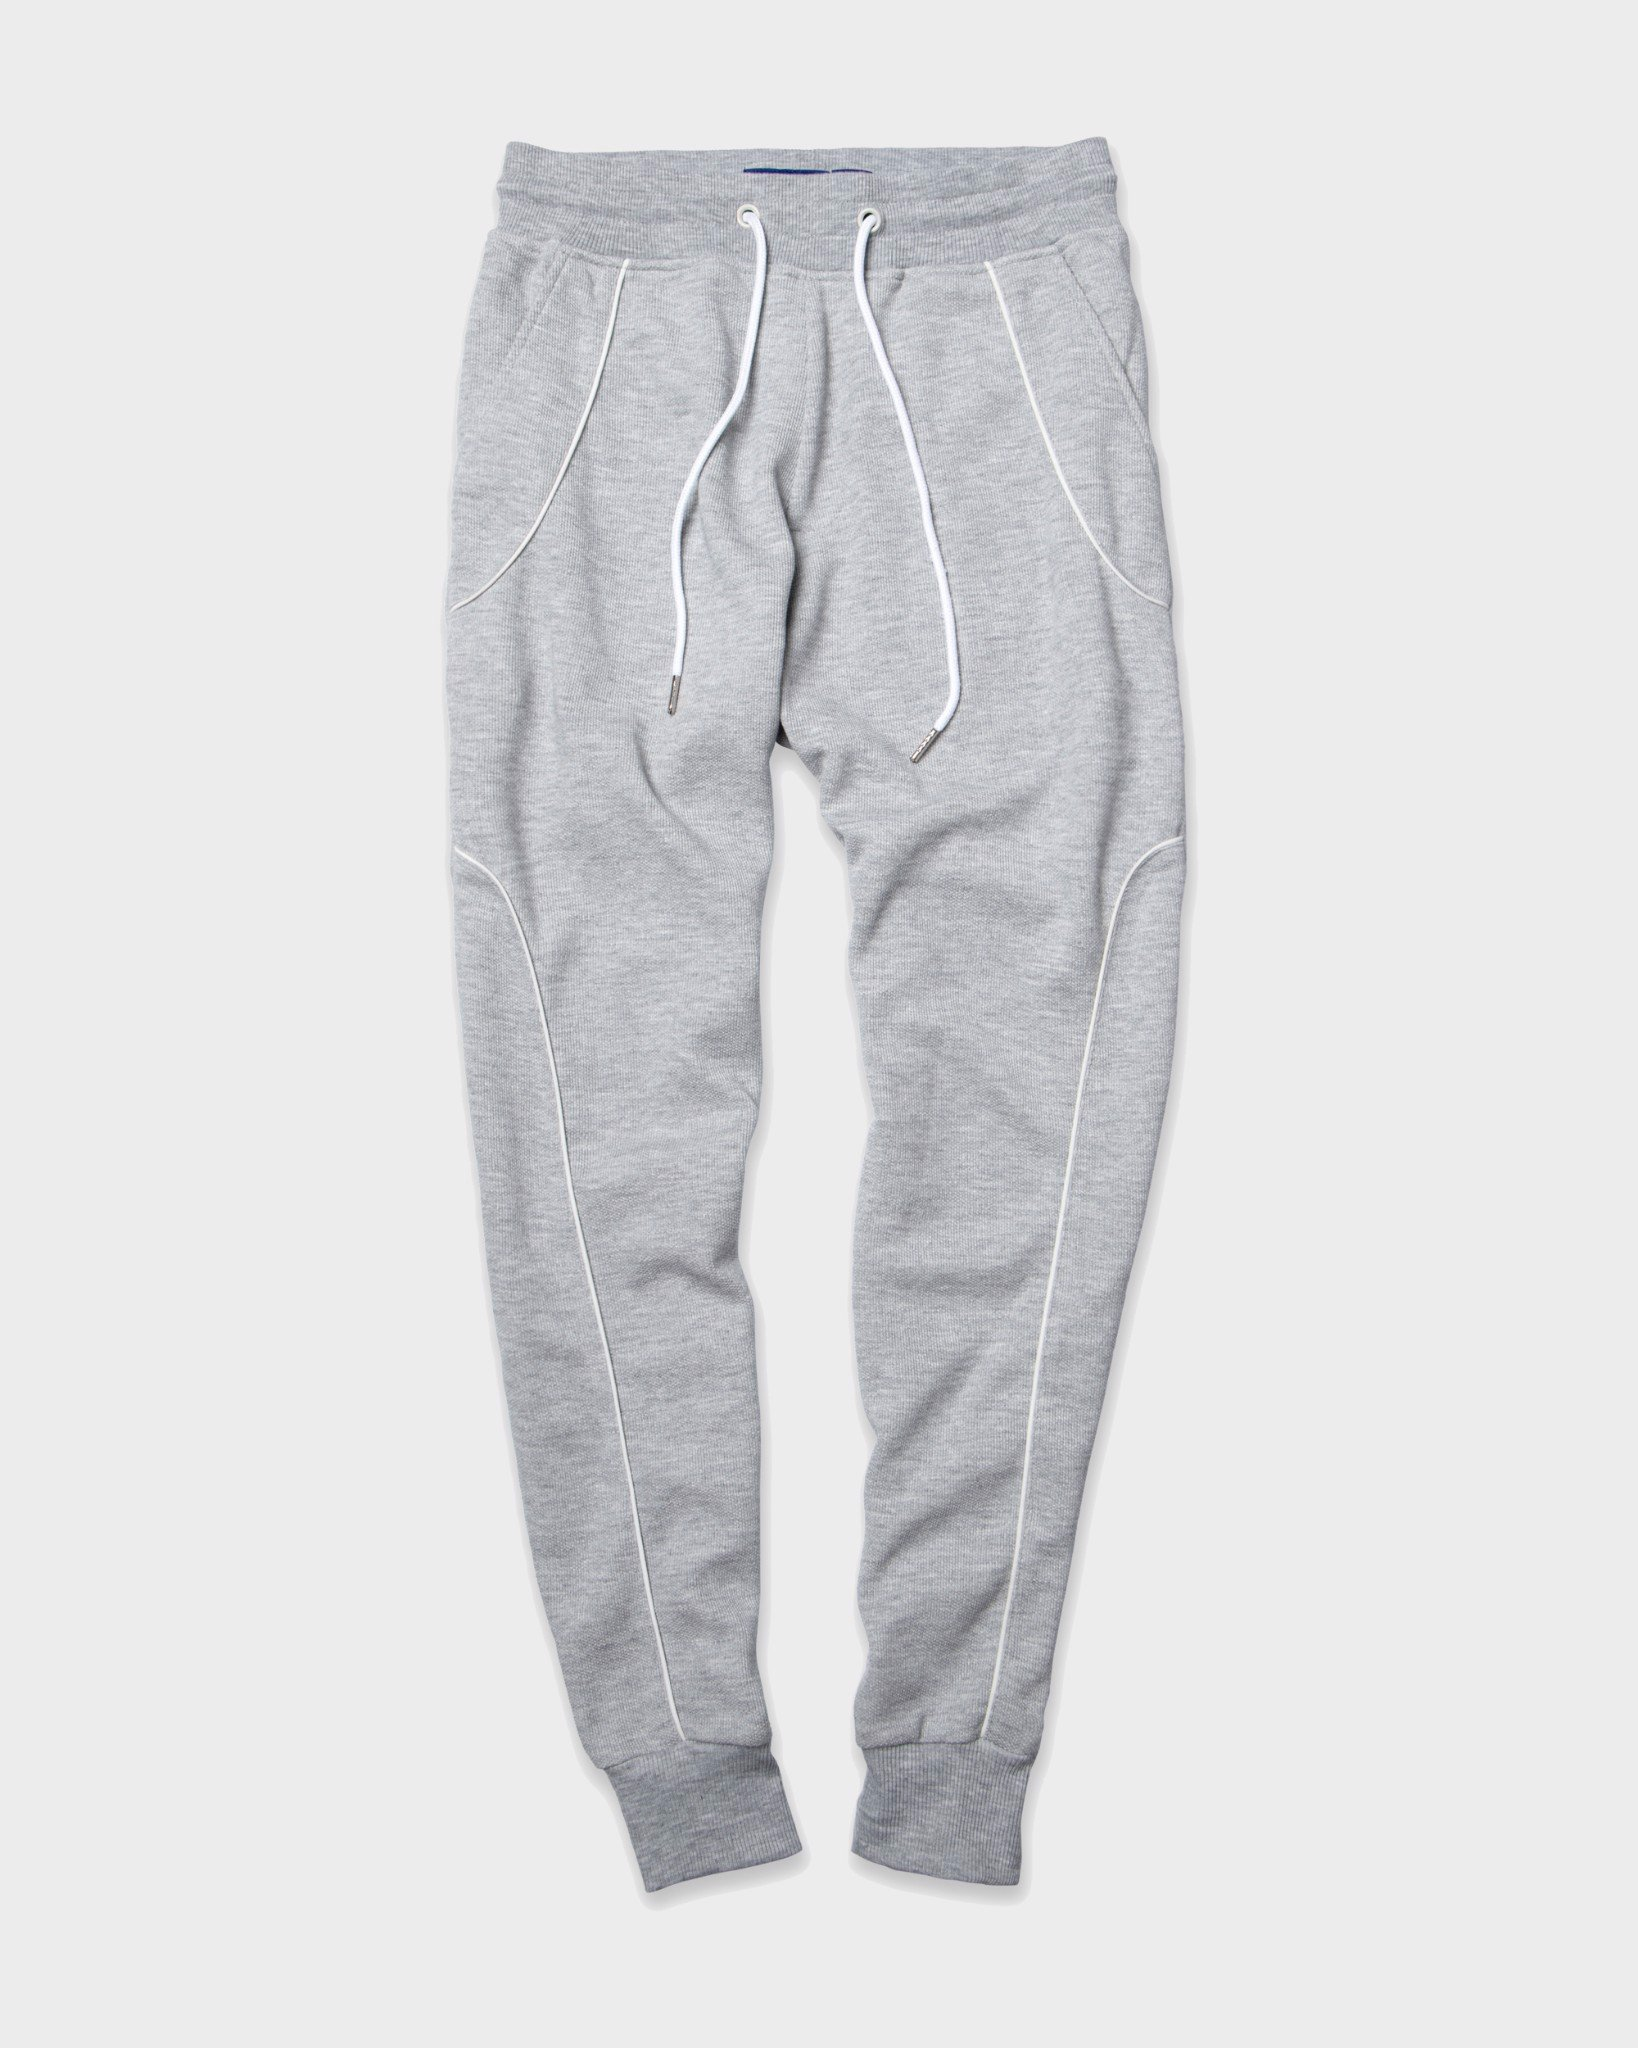 Co.8 Athleisure Tracksuits 2011Q